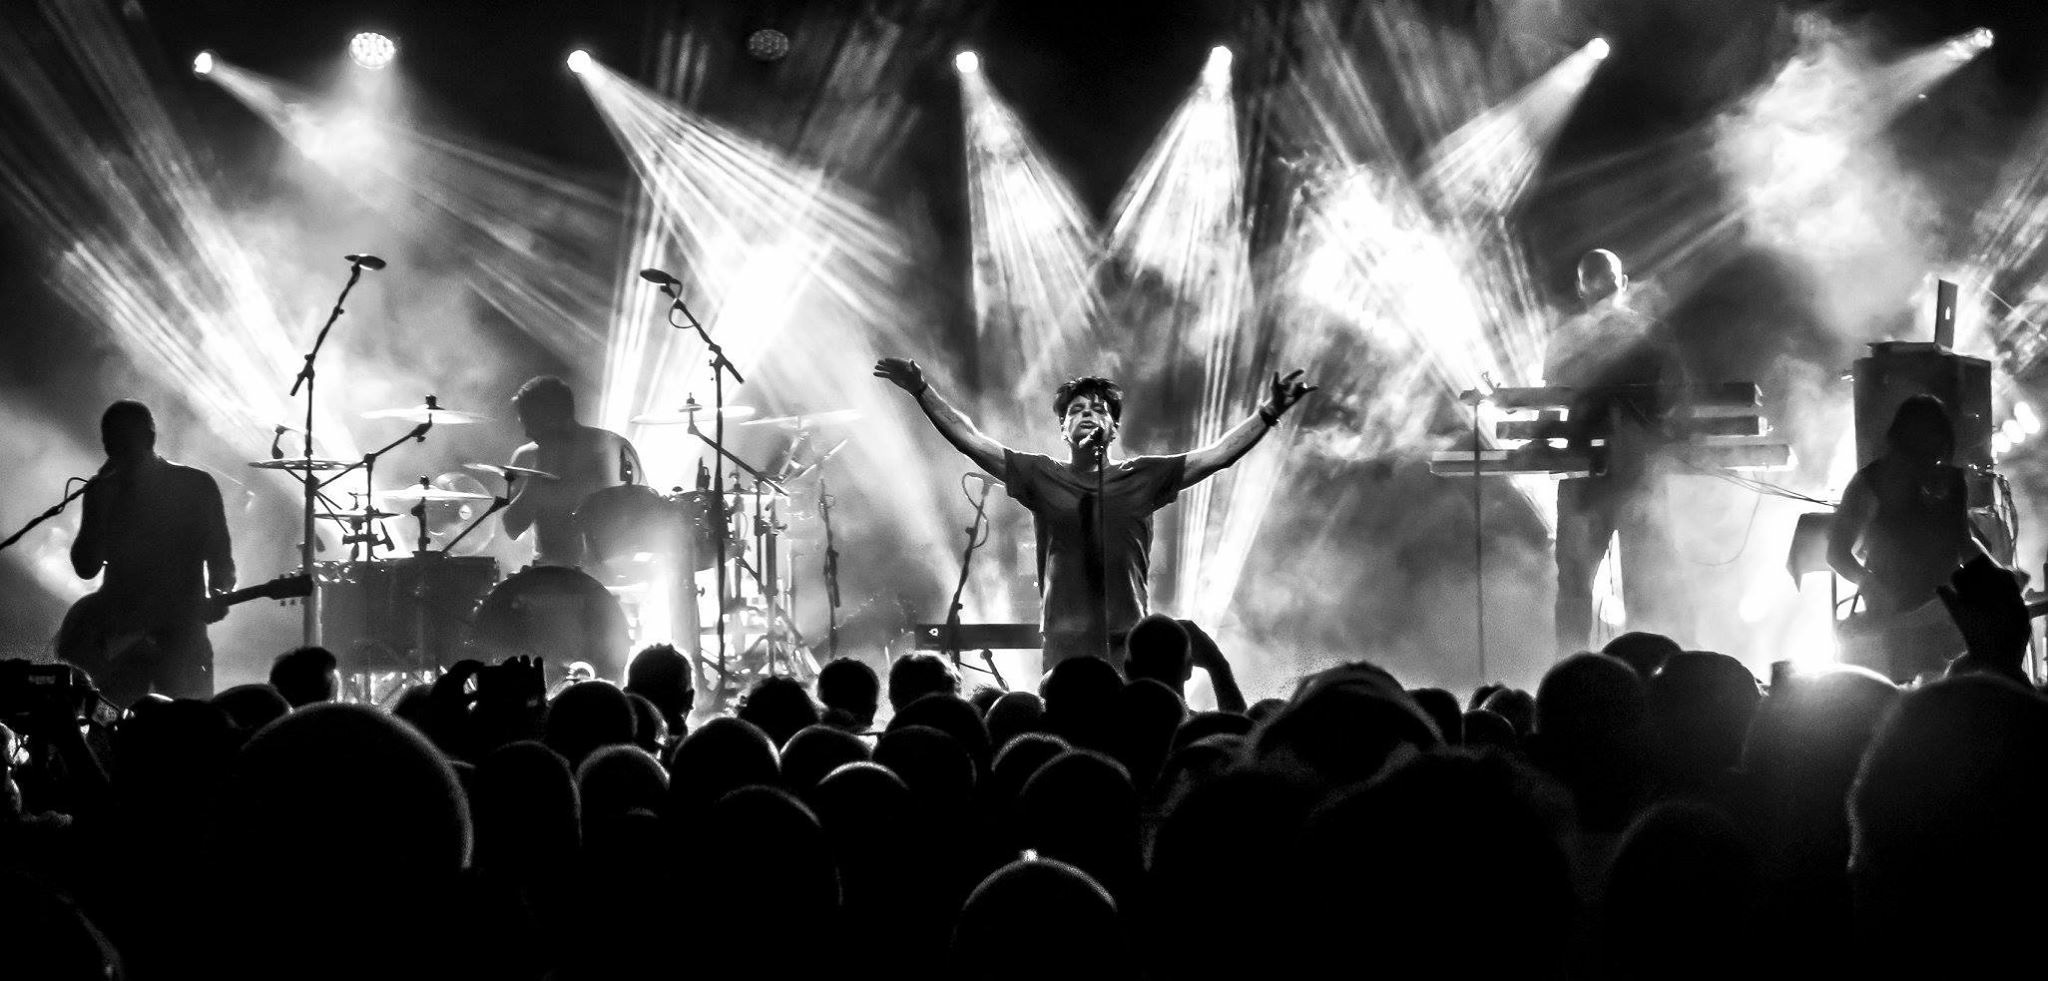 creative lighting design. UK - Electropop Pioneer Gary Numan Has Completed A Critically-acclaimed Tour, With Lighting Designer Luke Edwards Of Cue Design Ltd Selecting The Compact Creative I